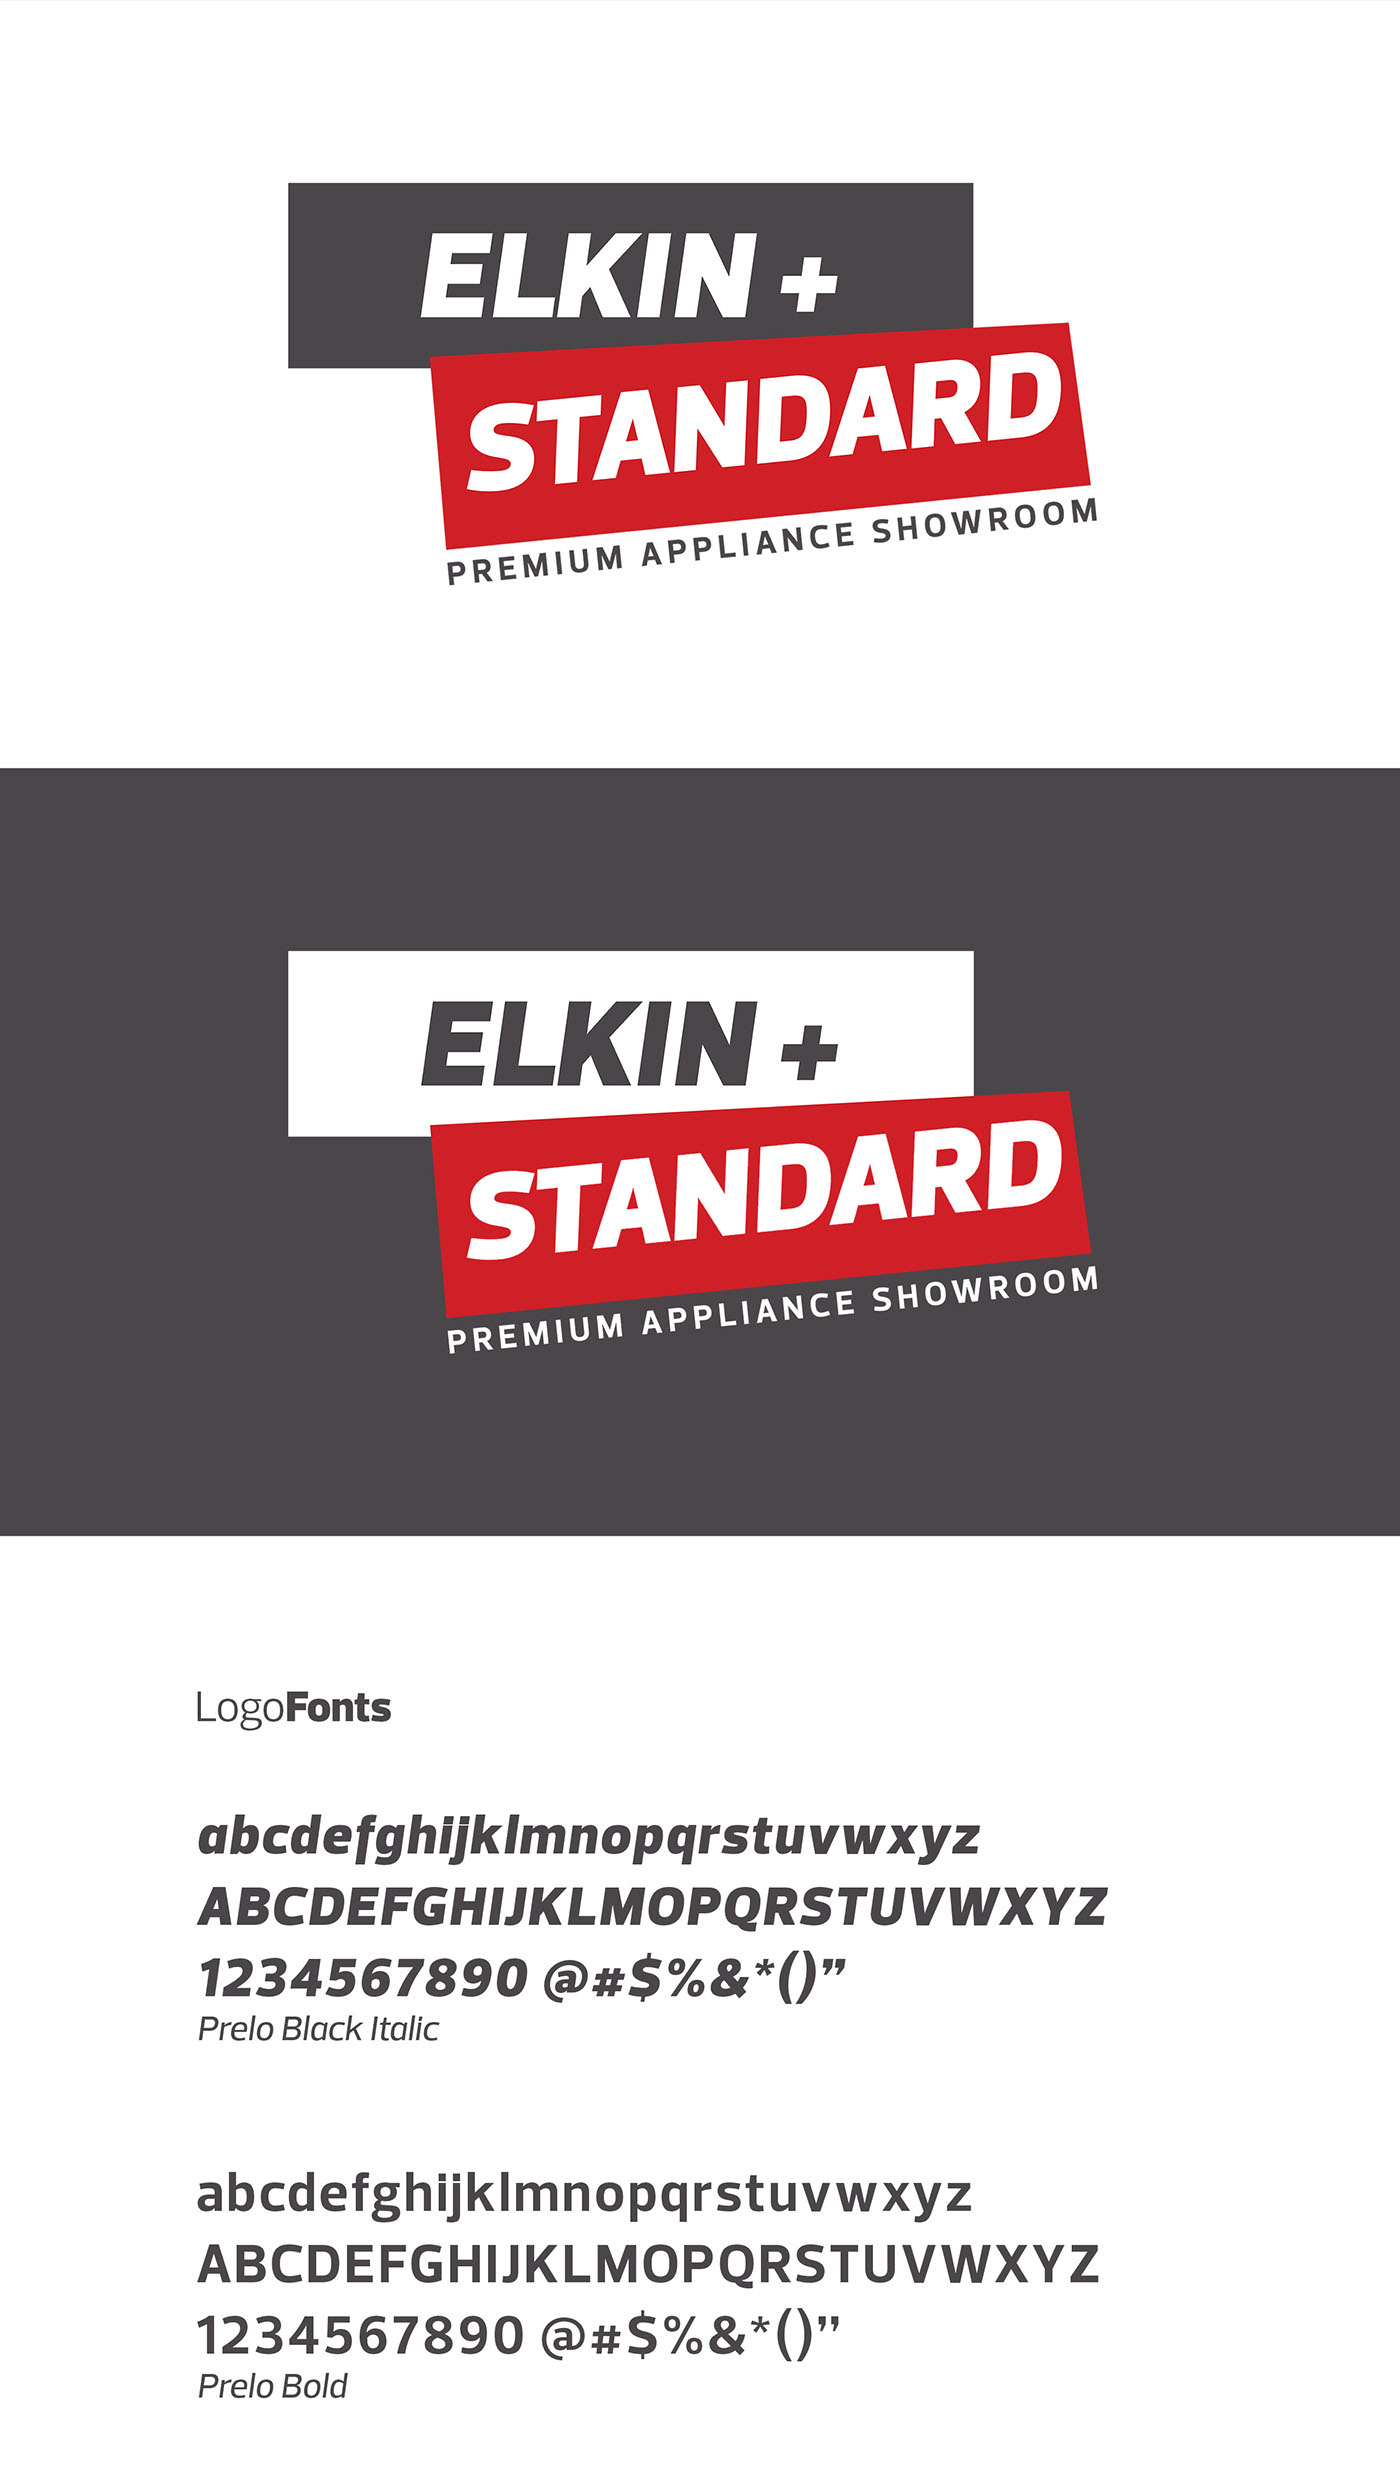 Elkin + Standard Appliance Showroom Branding on Behance